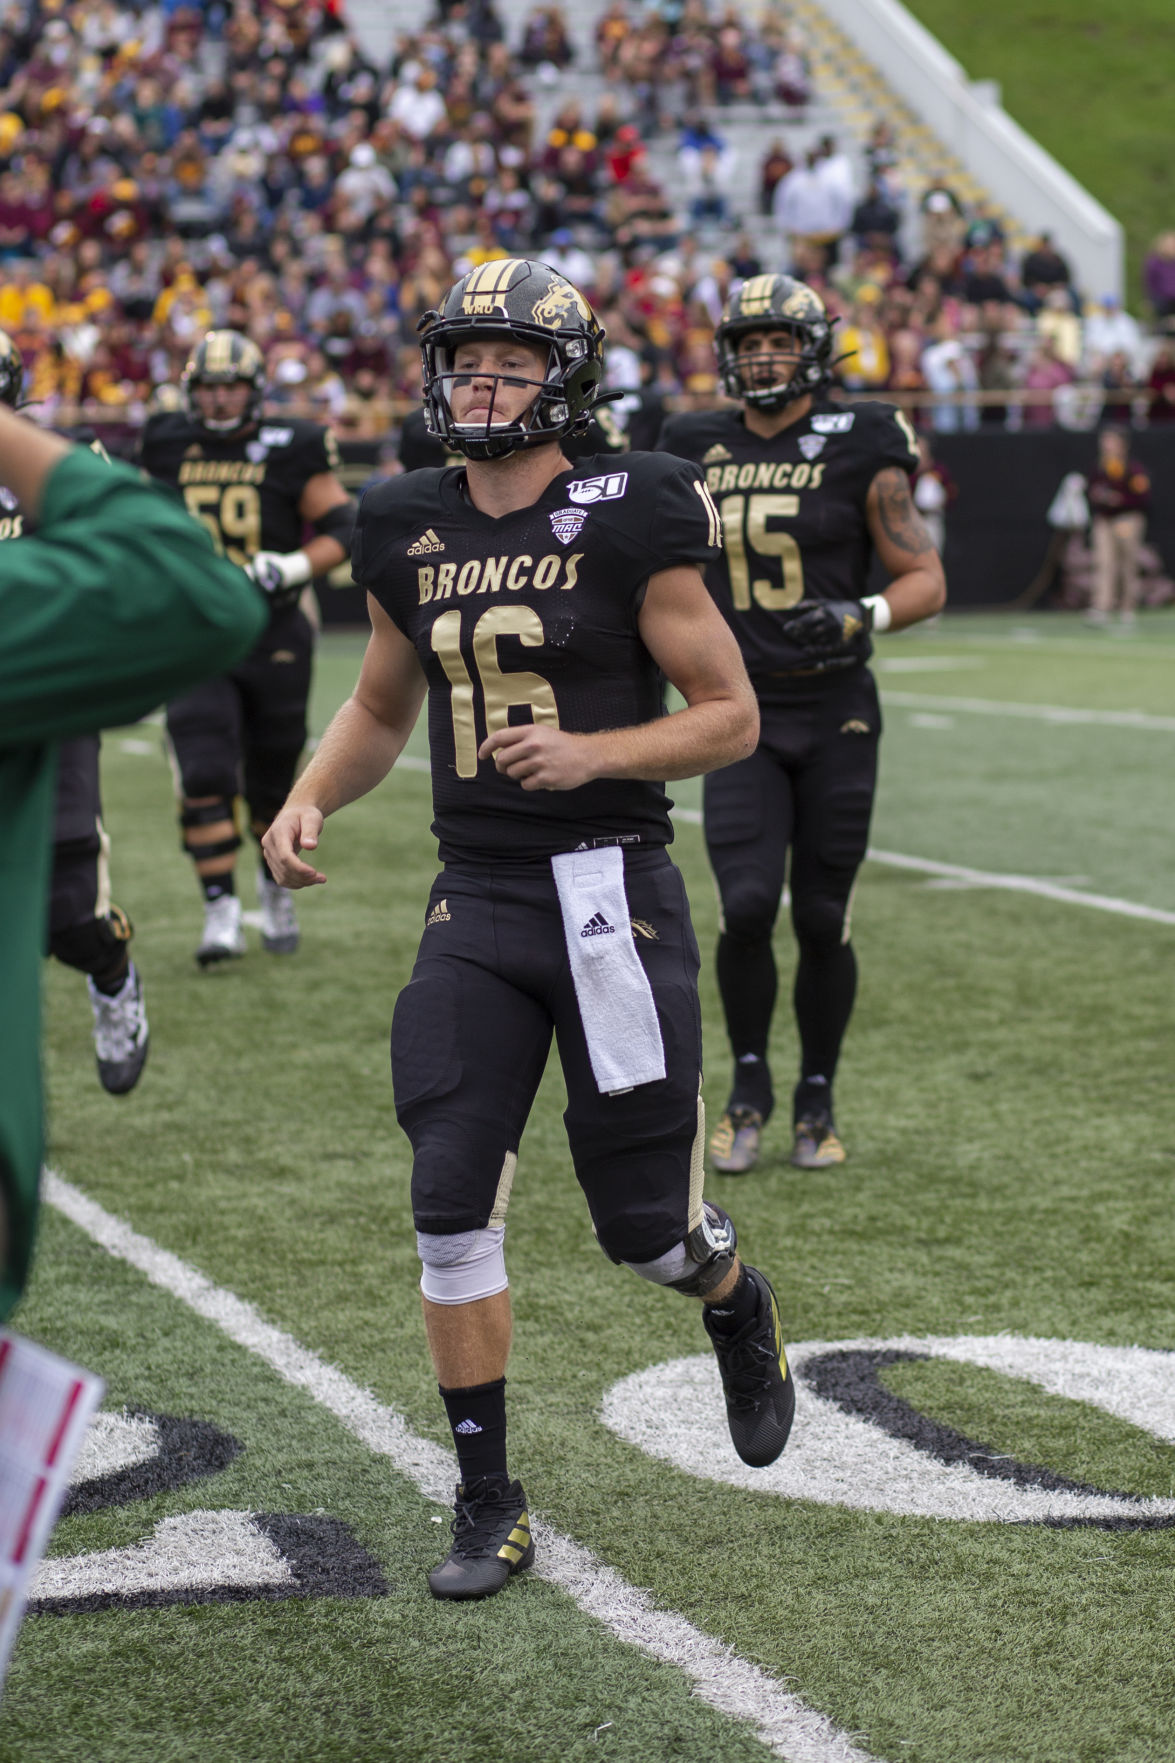 Quarterback Jon Wassink jogs to the sideline during a timeout while up 10-0 against the Central Michigan Chippewas.